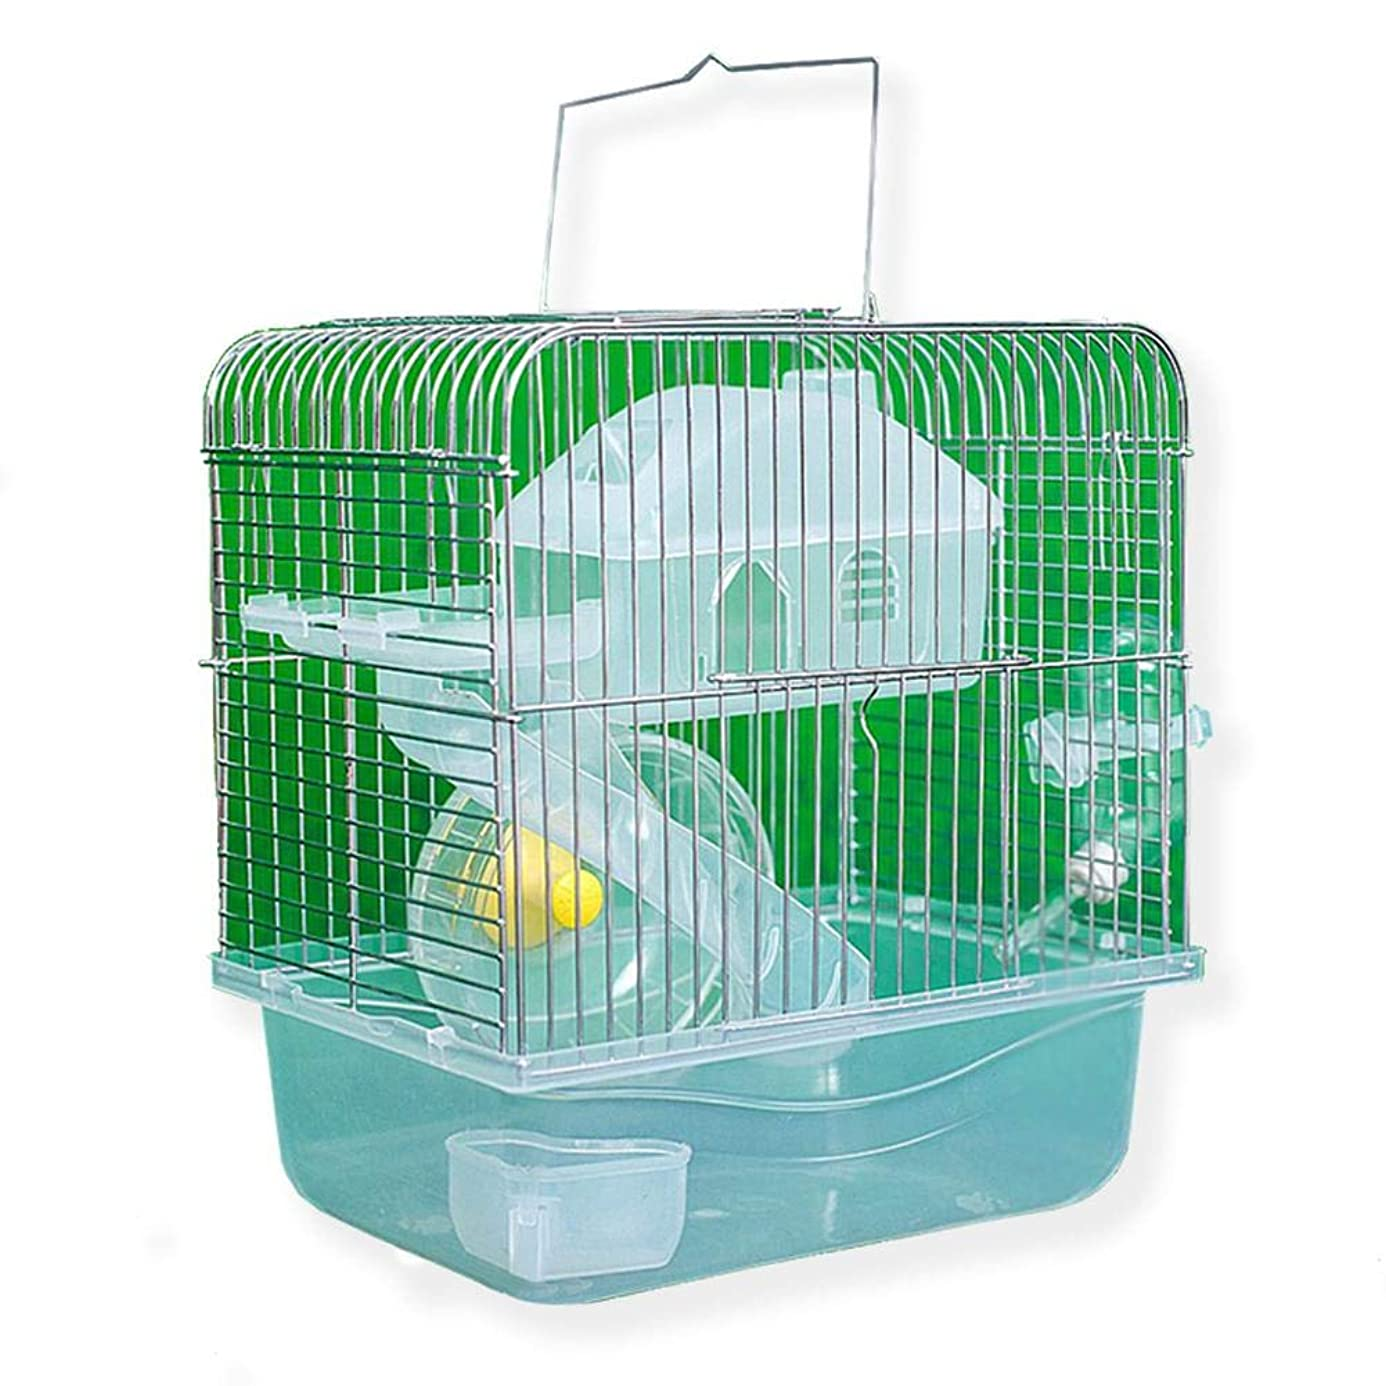 S-World 4Home Hamster Cage - Stainless Steel Pet Cage Transparent Crystal Color Hamster Cottage Double Layer House for Hamster Golden Hamster Pet